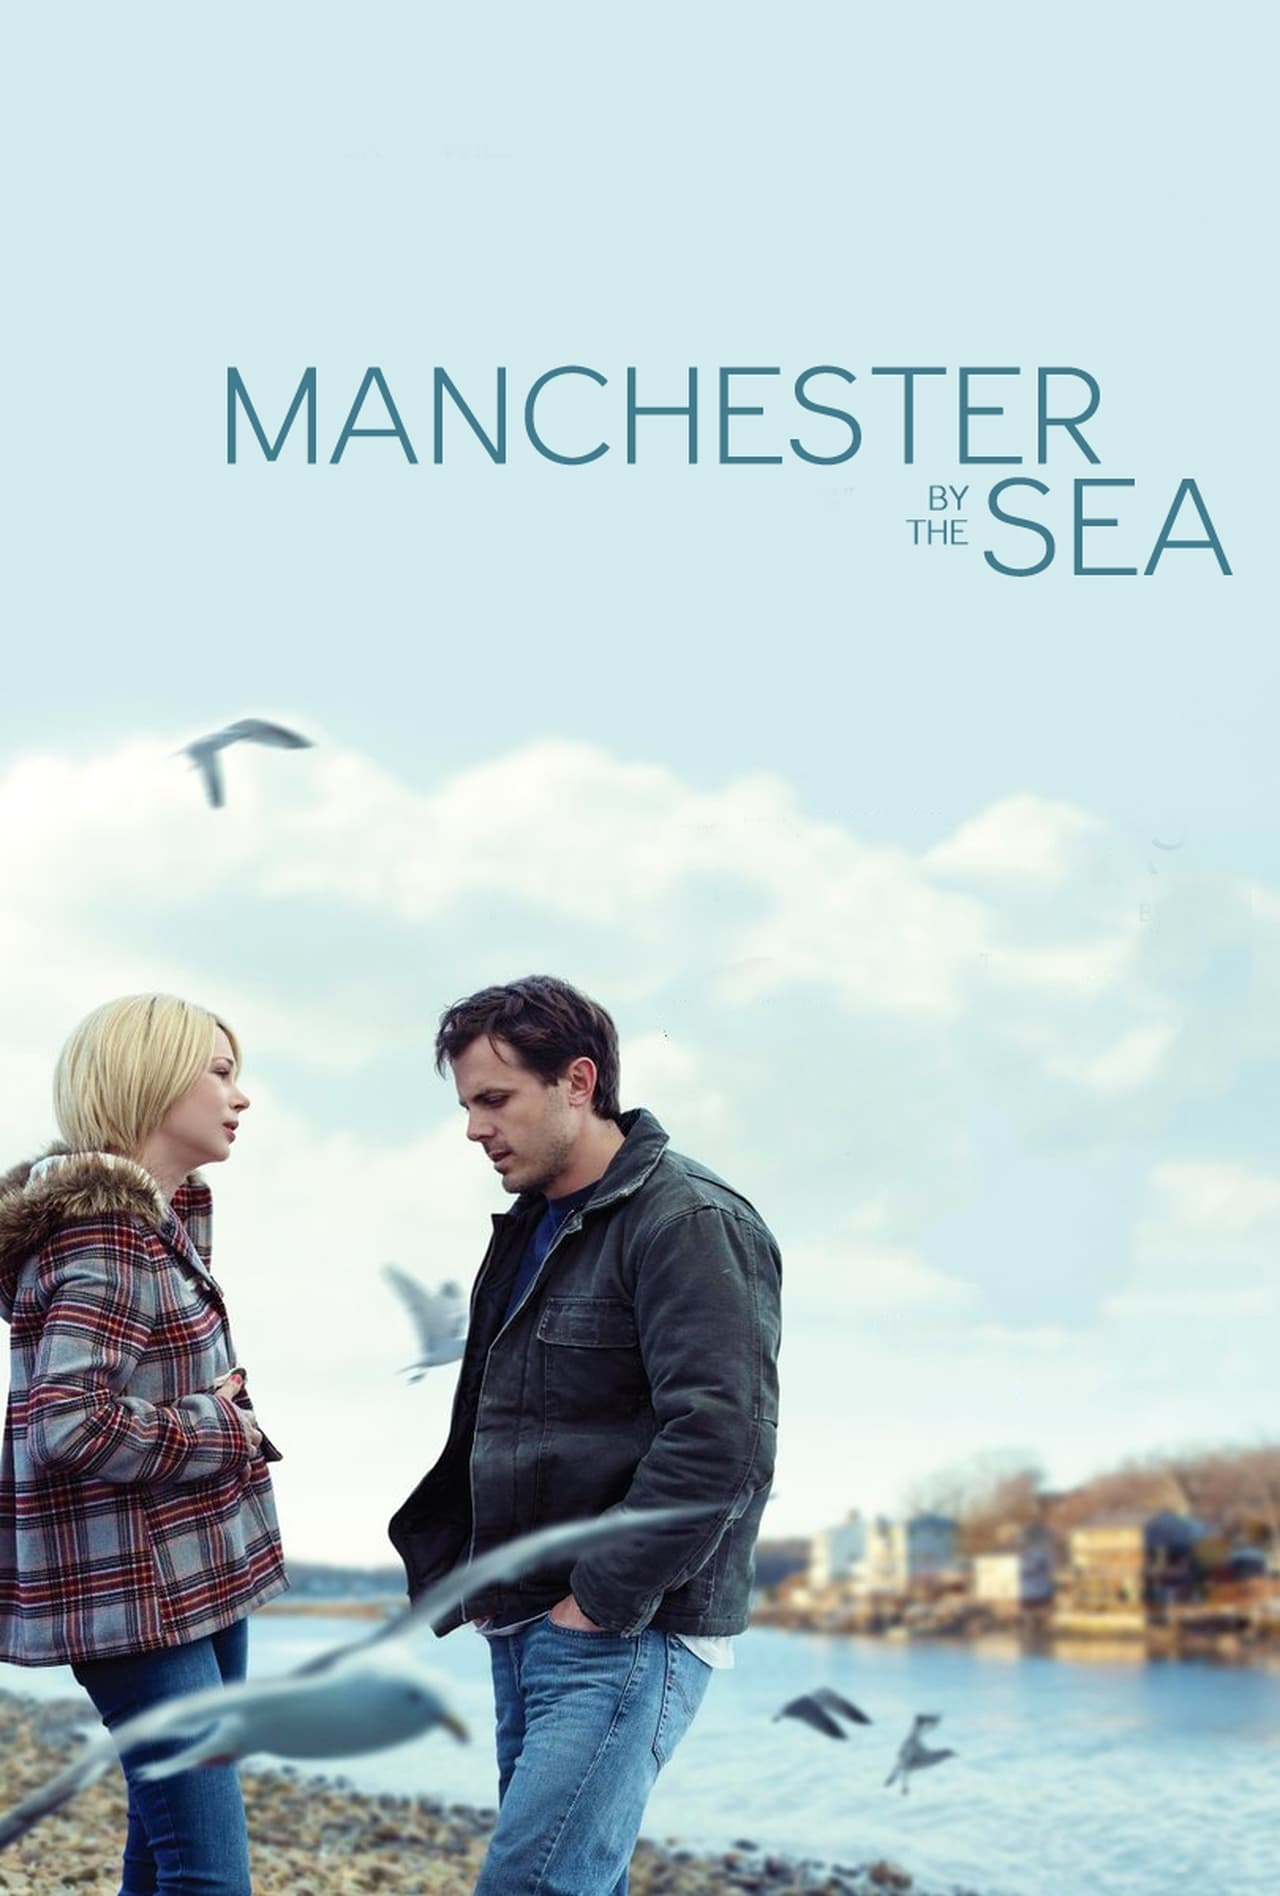 download full movie manchesterthe sea (2016) english subtitle